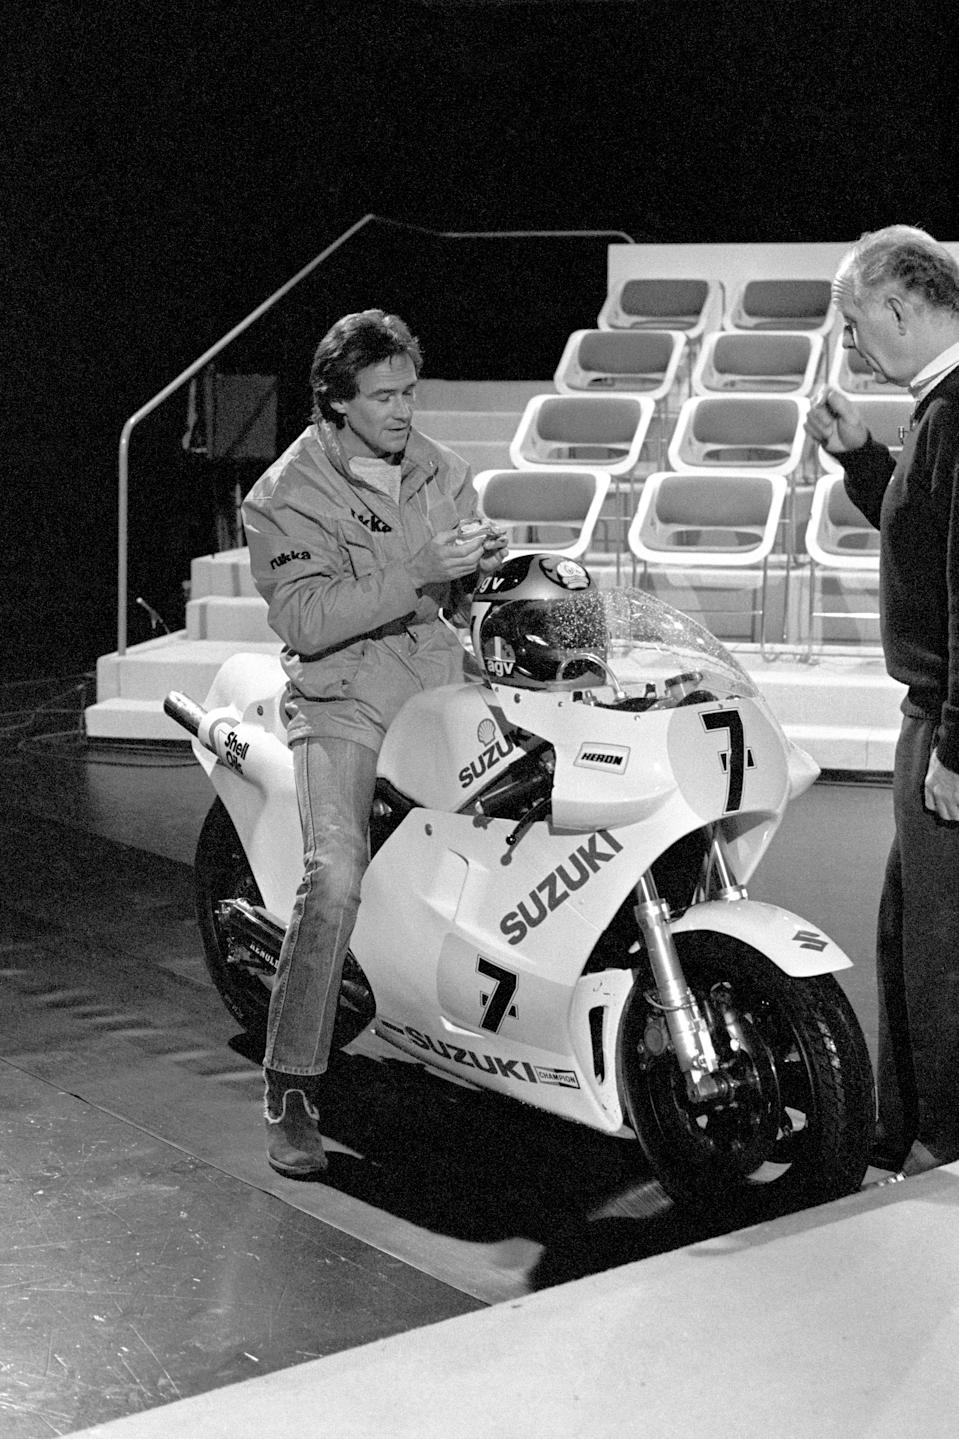 Motorcyclist Barry Sheene (l) talks to presenter Frank Bough (r) after riding into the studio, the first time he had ridden a motorcycle unaided since the horrific crash in which he broke an arm and both legs. (Photo by PA Images via Getty Images)